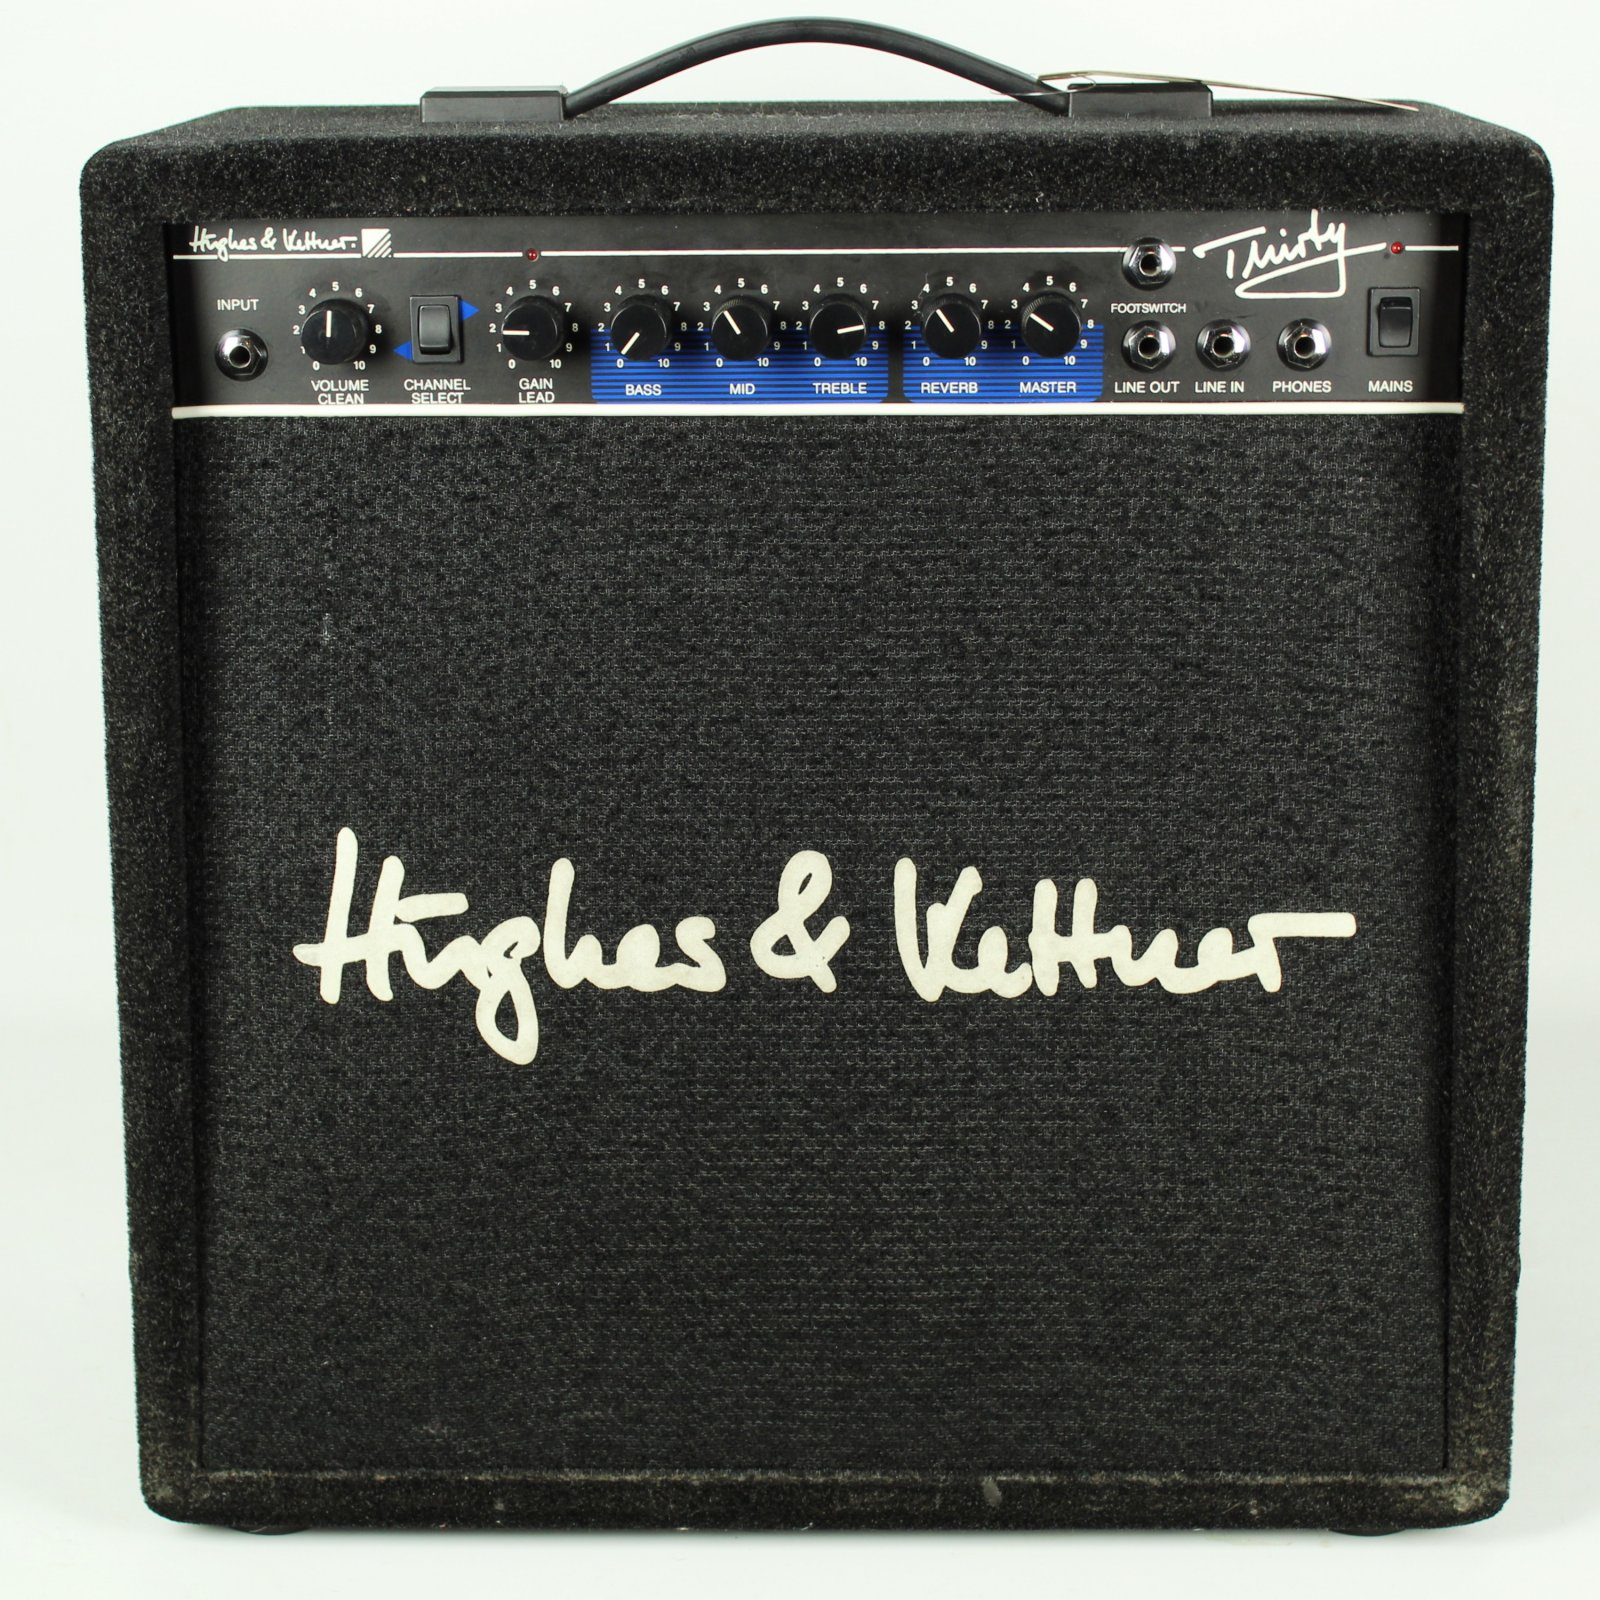 Hughes & Kettner Thirty Combo Guitar Amplifier (USED)